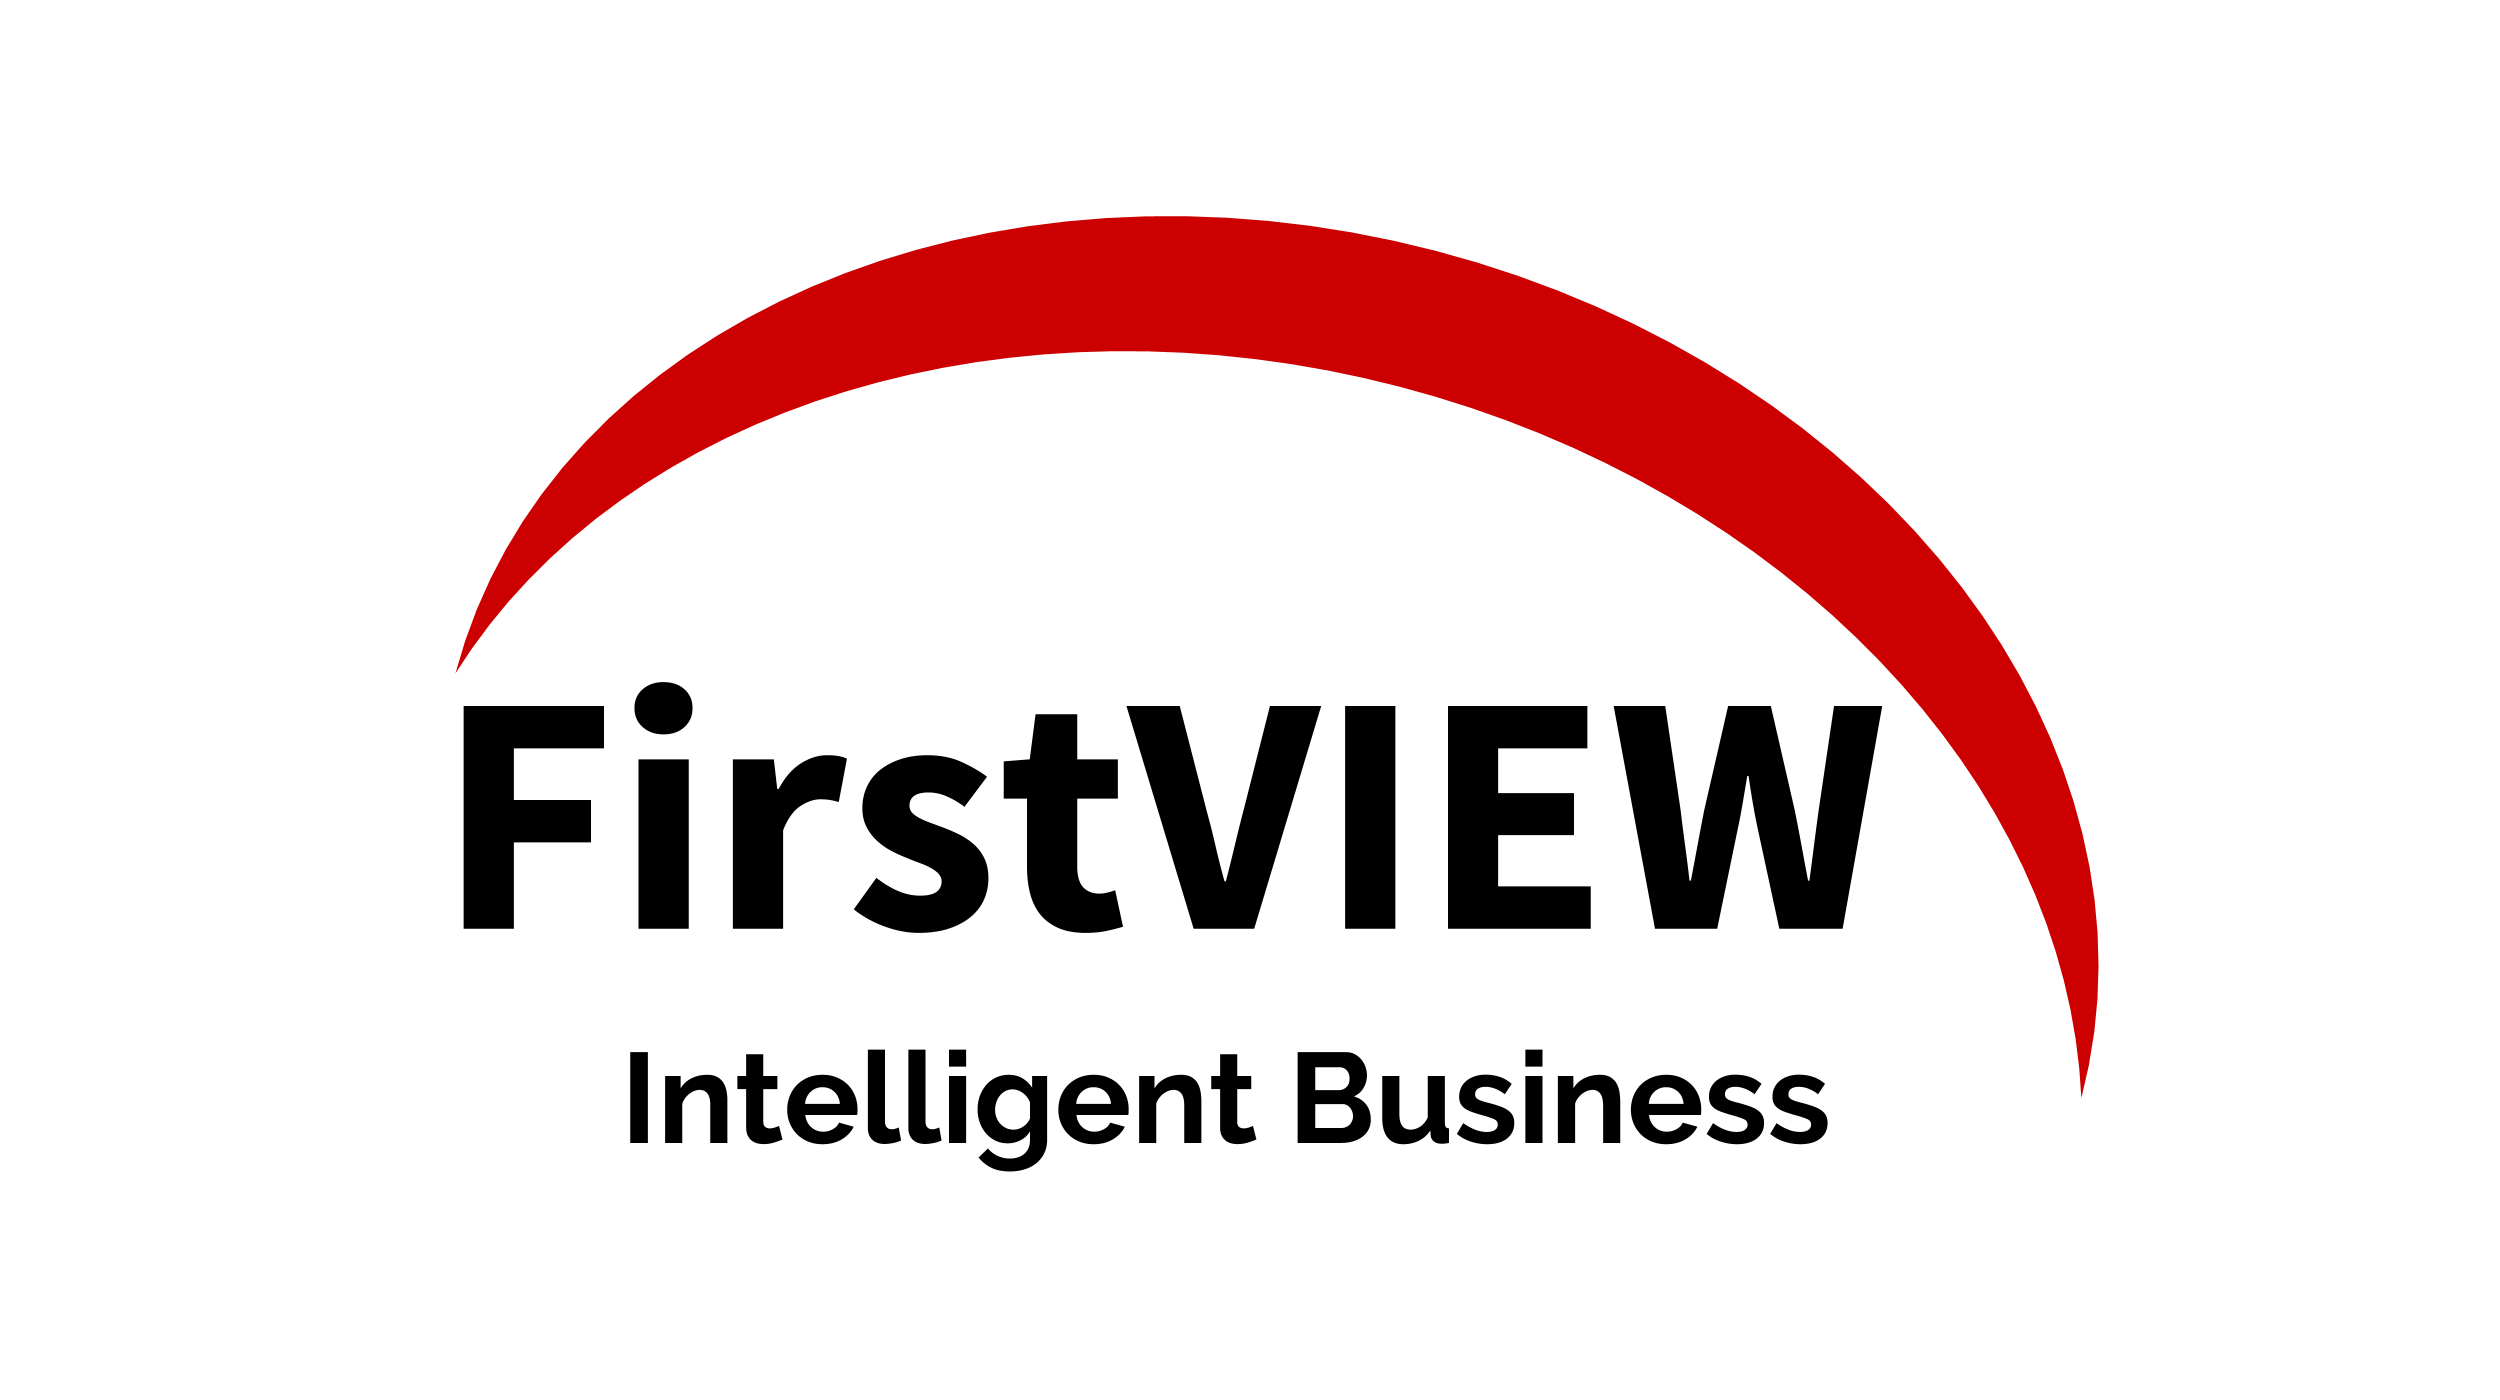 FirstVIEW